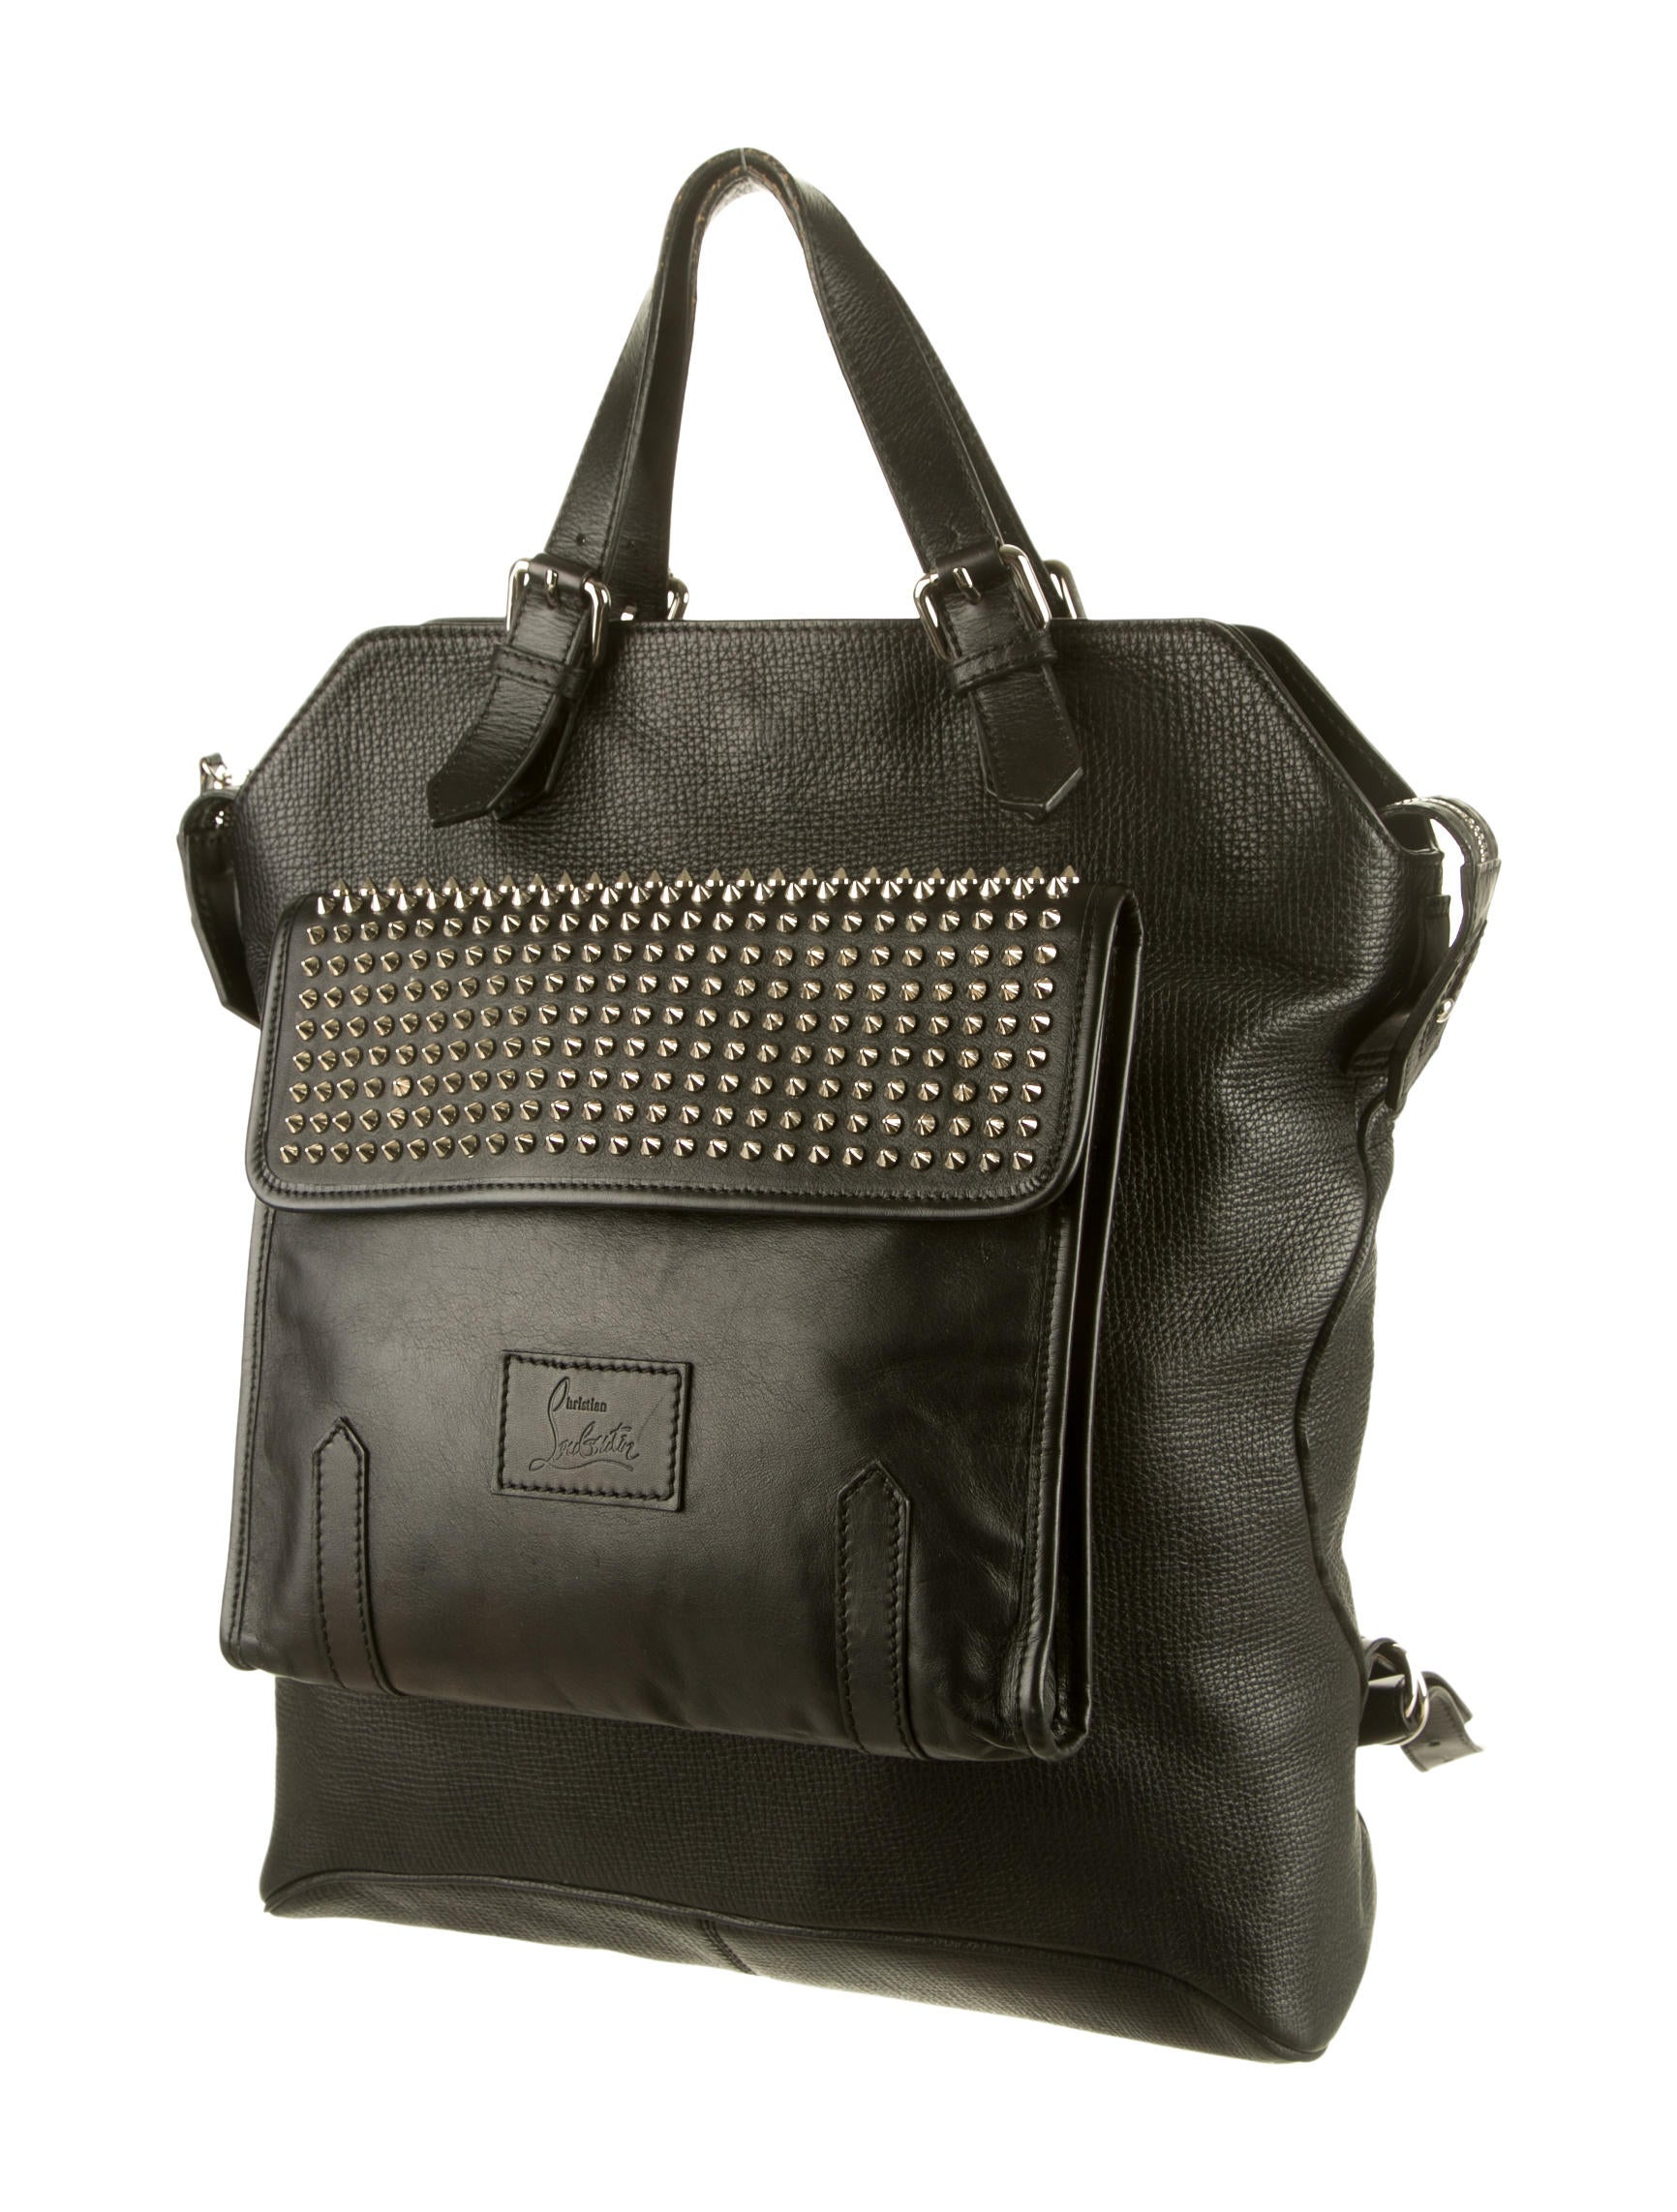 Christian Louboutin Syd Spiked Backpack - Bags - CHT34889 | The ...